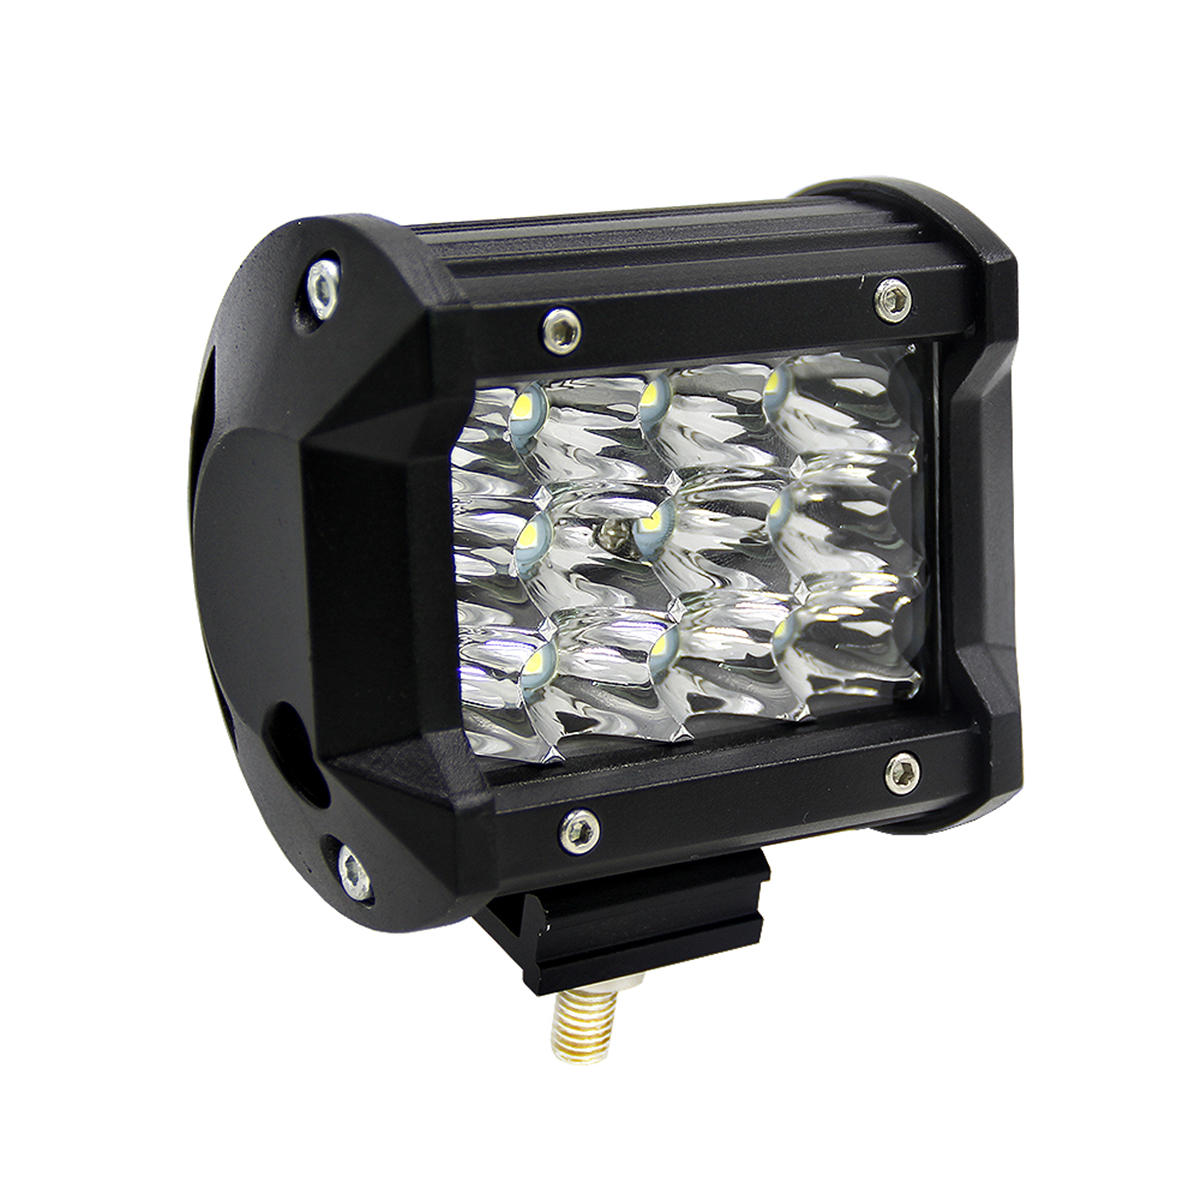 4 Inch 12 LED 36W LED Work Light Bar Driving Lamp For SUV Off-Road ATV 4WD фото